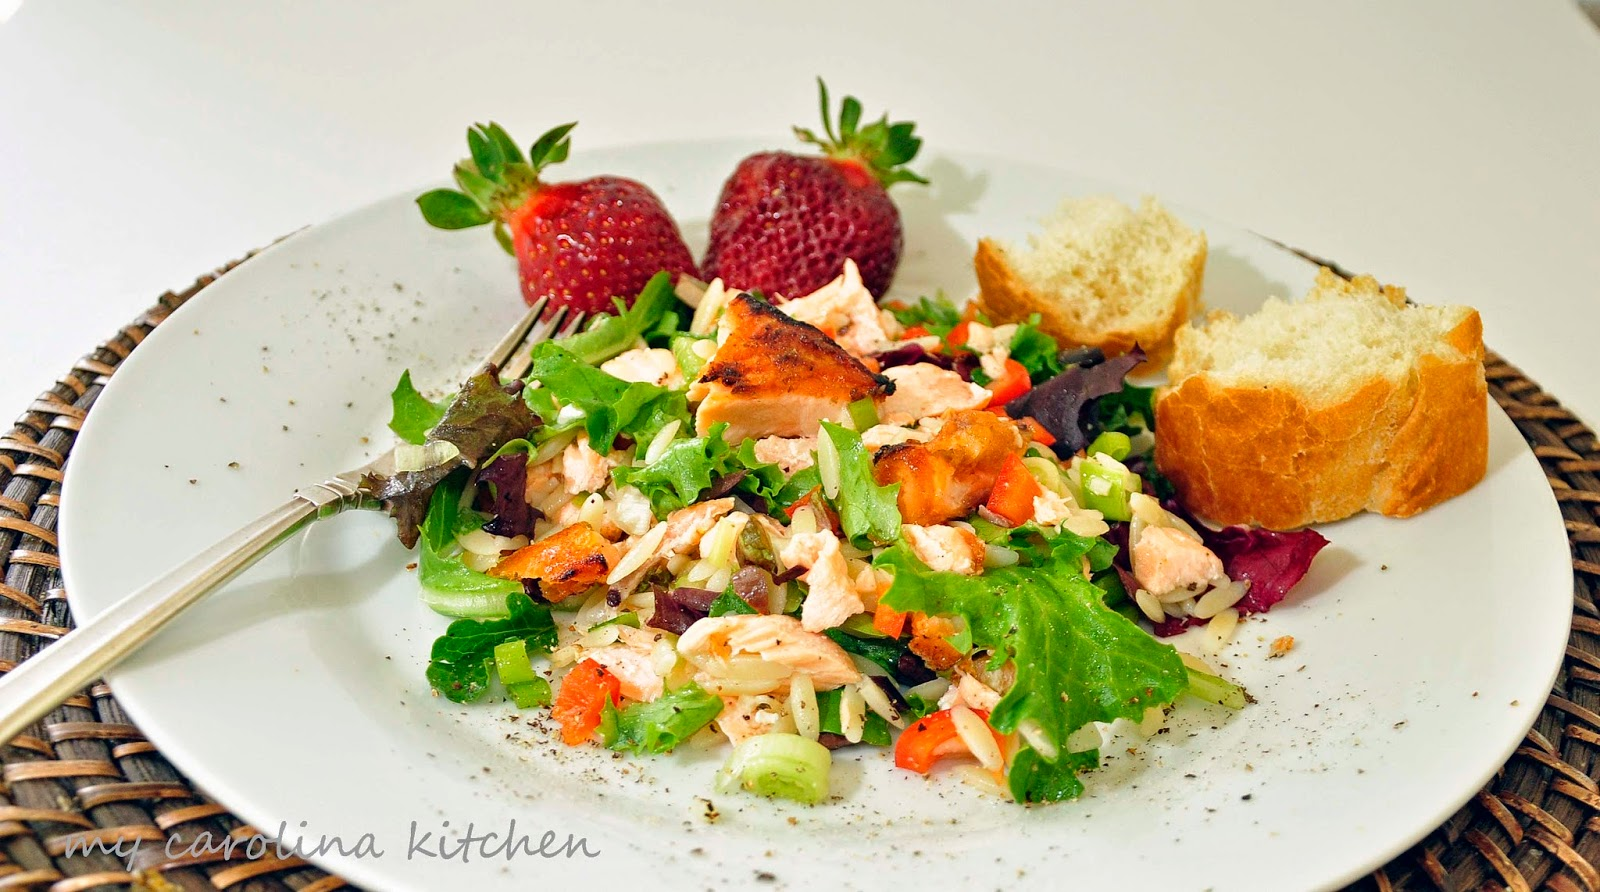 ikea salmon salad recipes ikea salmon salad recipe. Black Bedroom Furniture Sets. Home Design Ideas